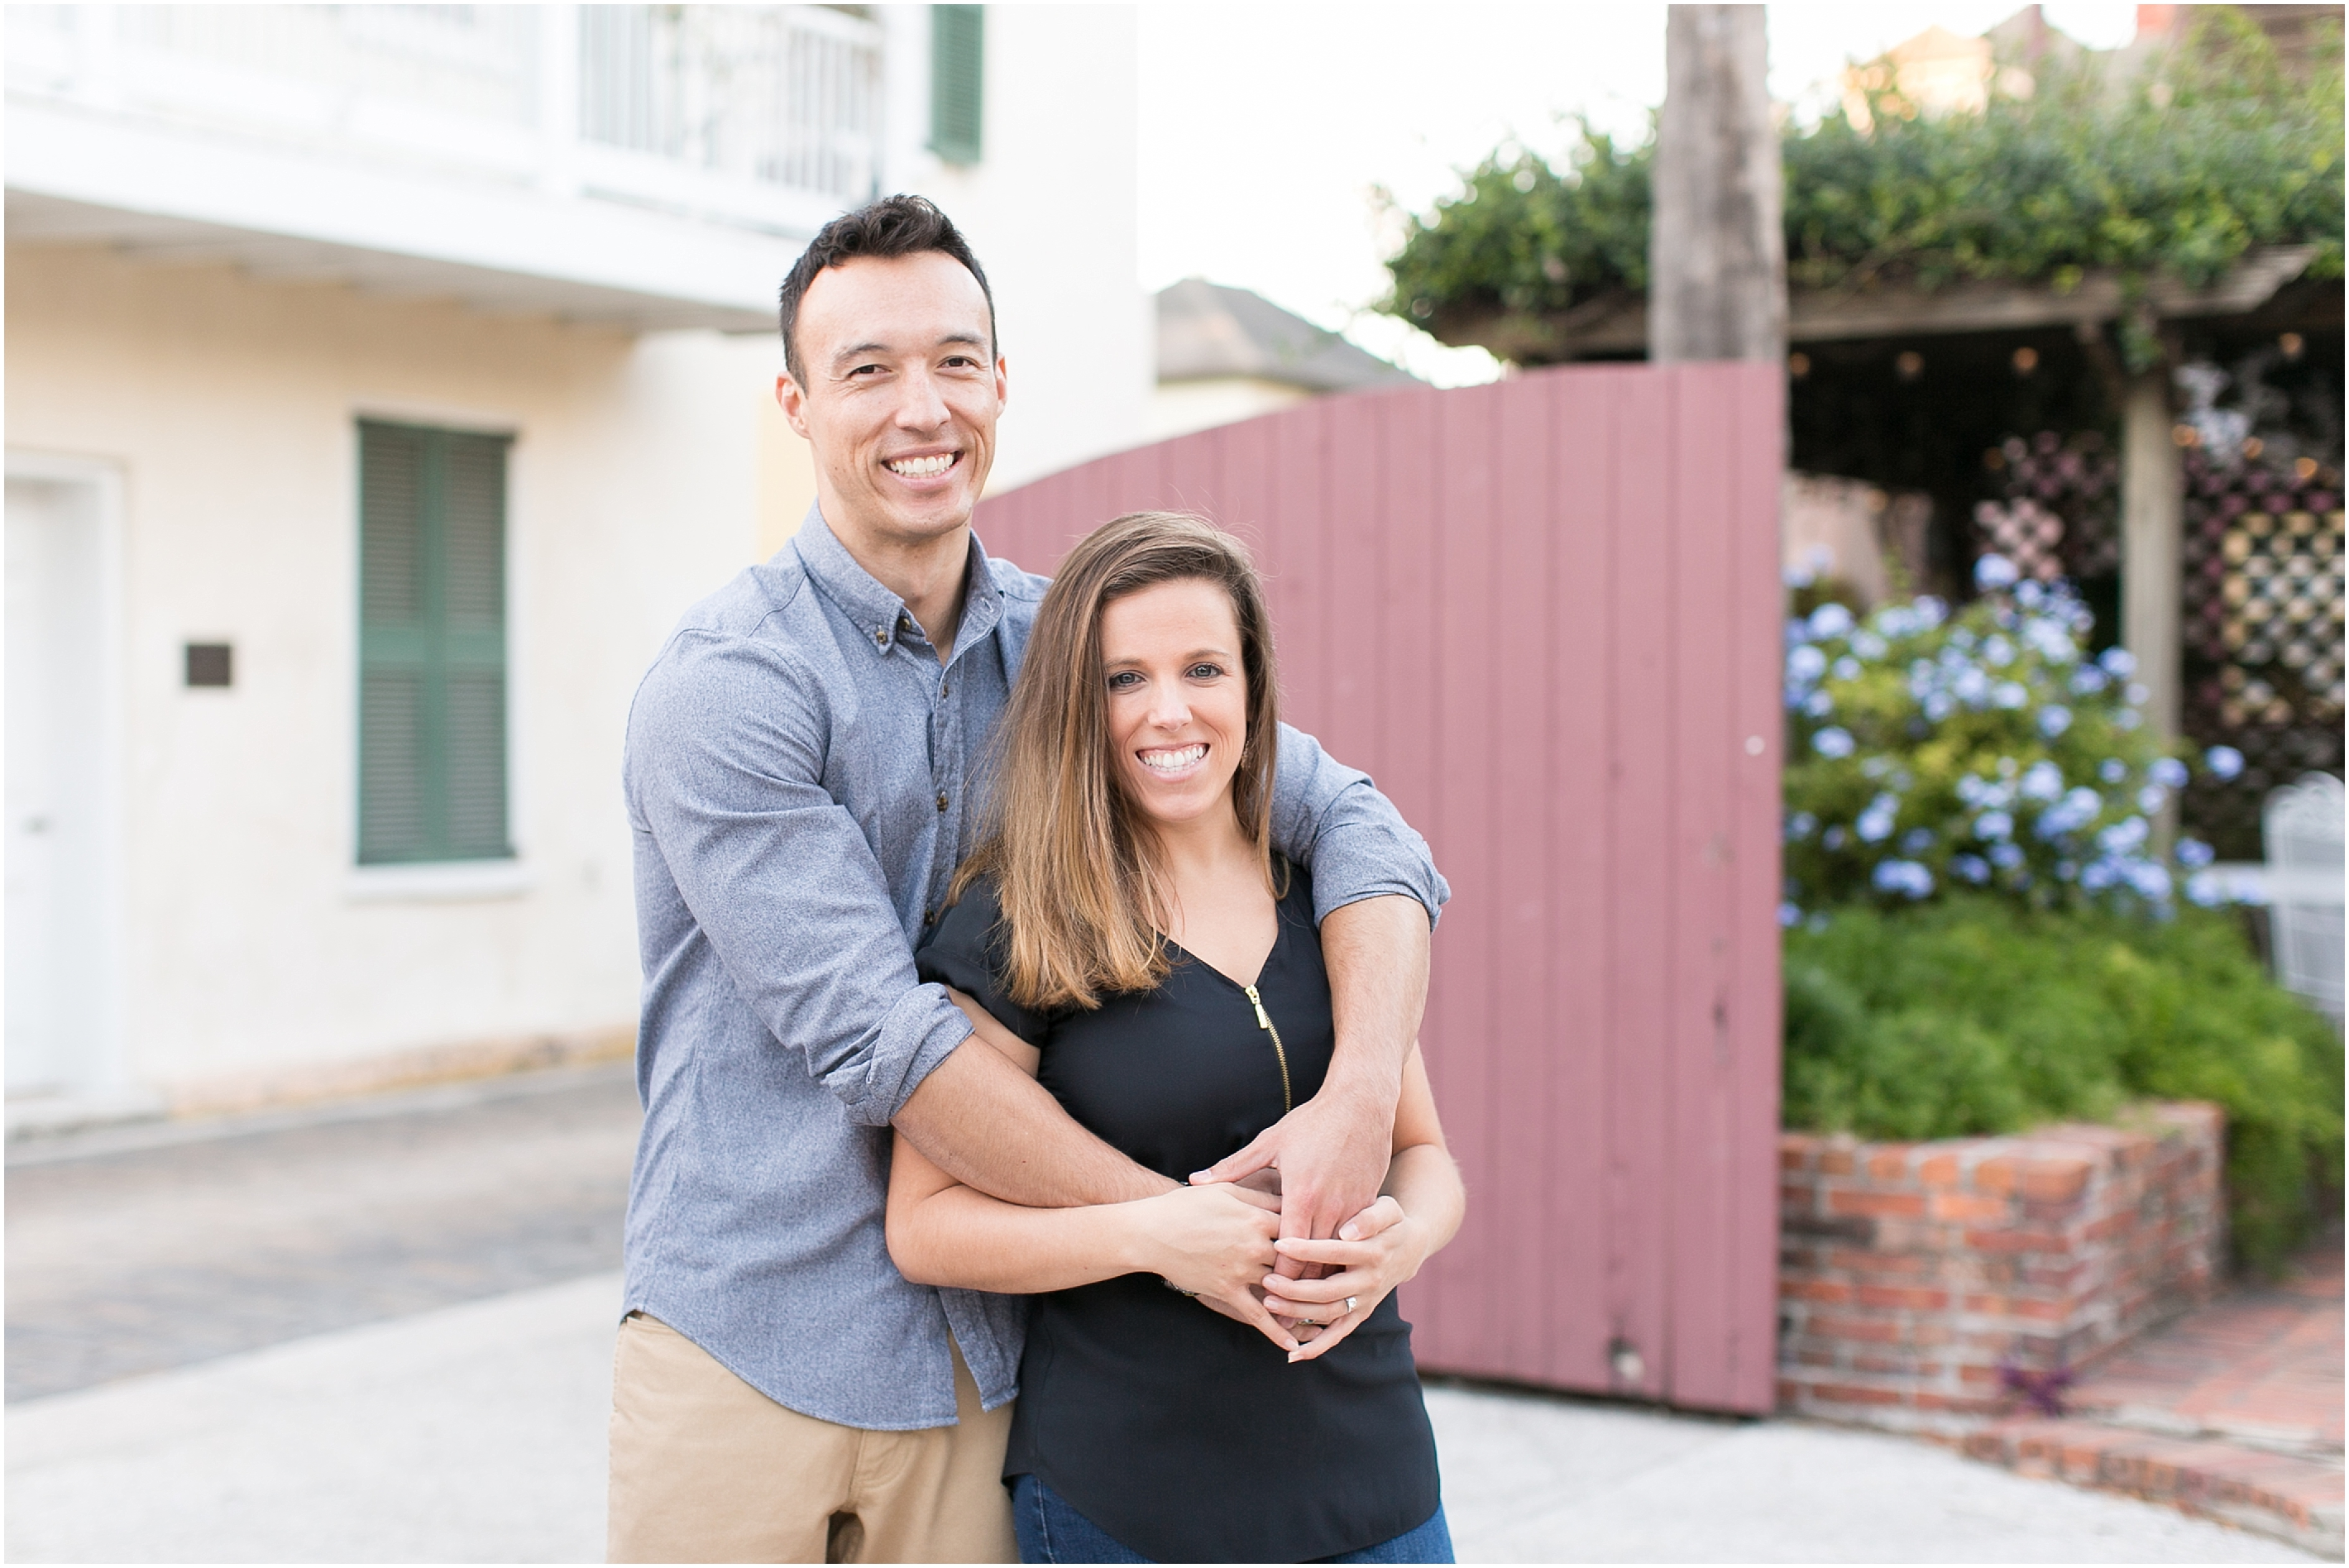 va_jessica_ryan_photography_st_augustine_florida_destination_engagement_photography_0138